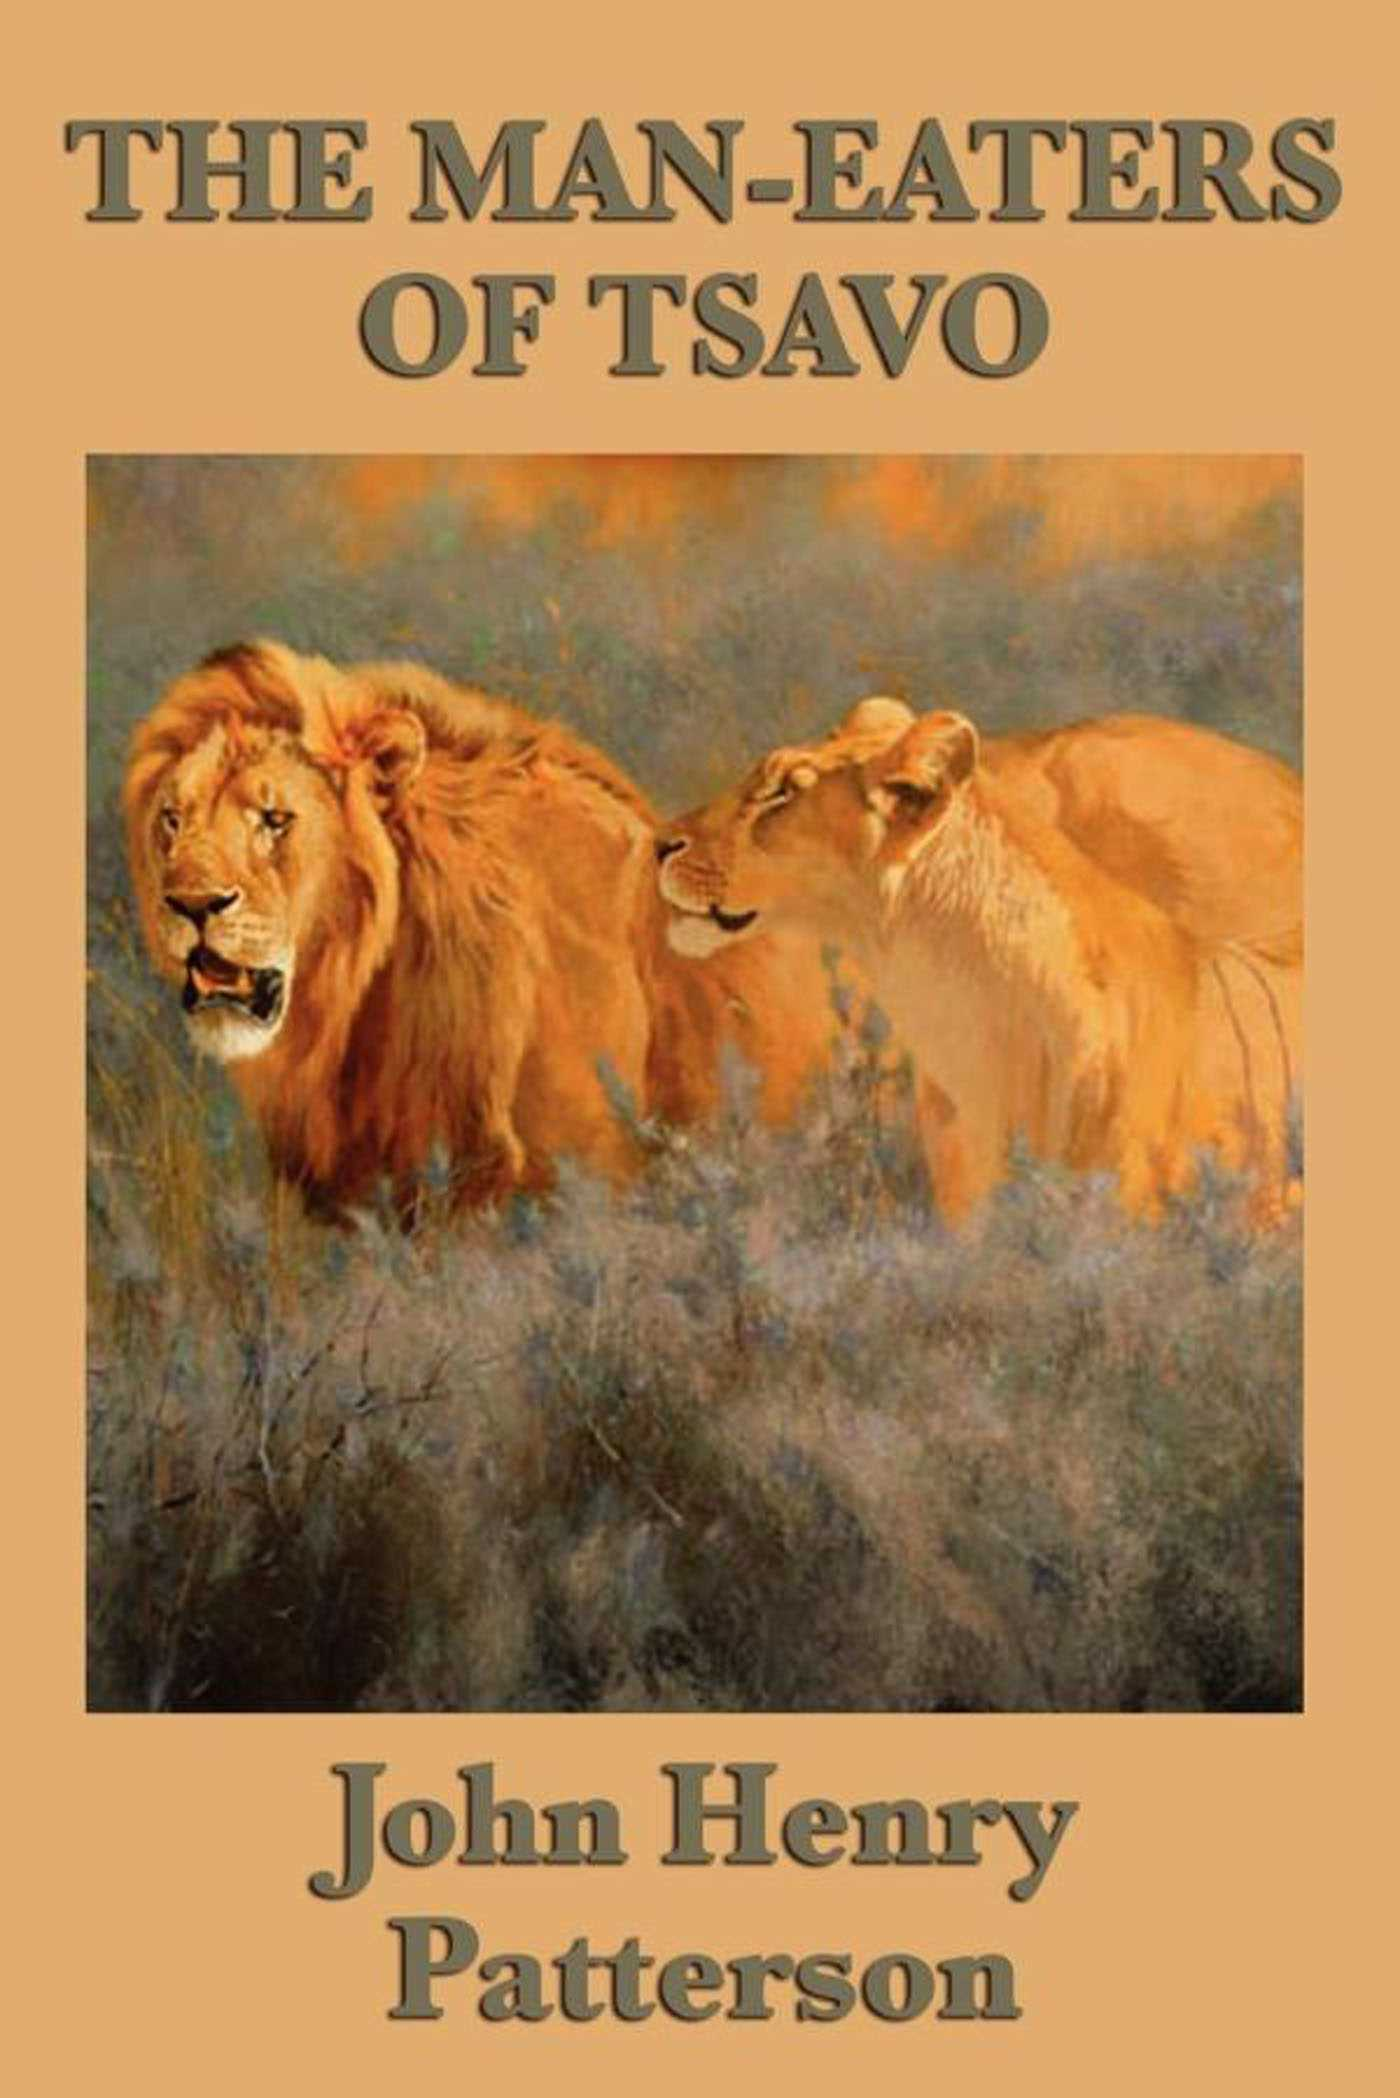 The man eaters of tsavo 9781627932943 hr